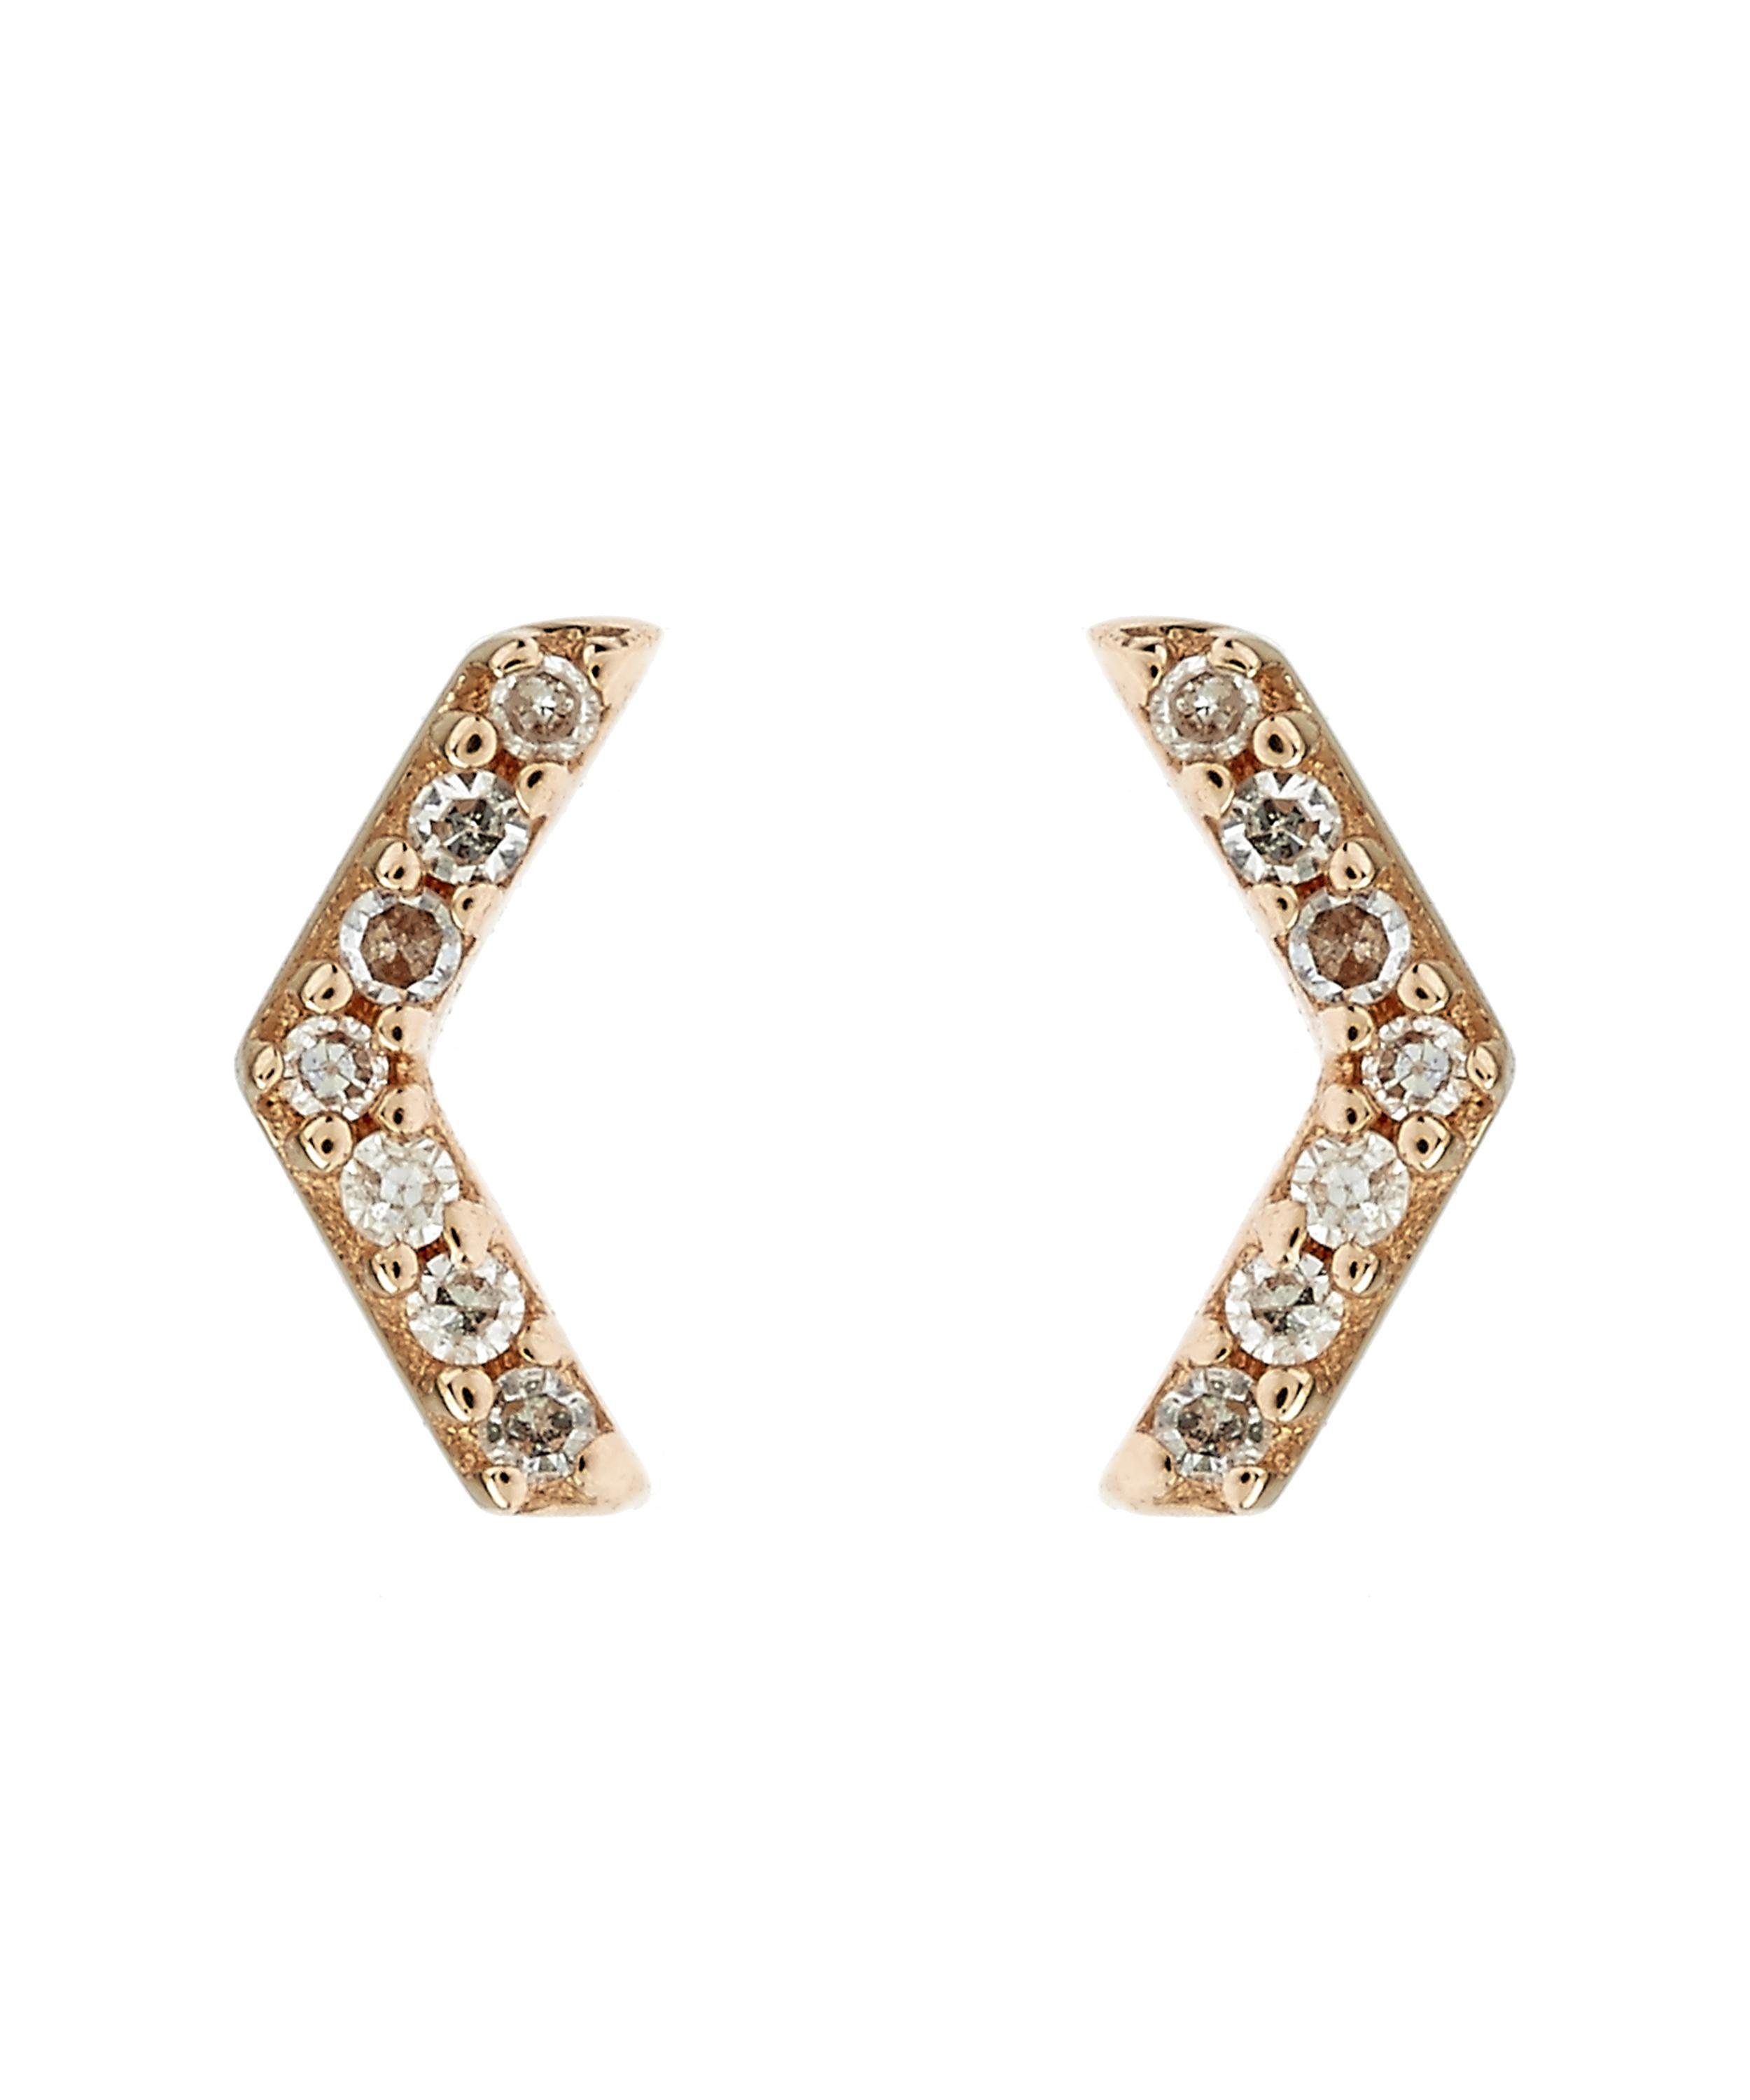 Astley Clarke plain triple Honeycomb stud earrings - Metallic J9tSfmf